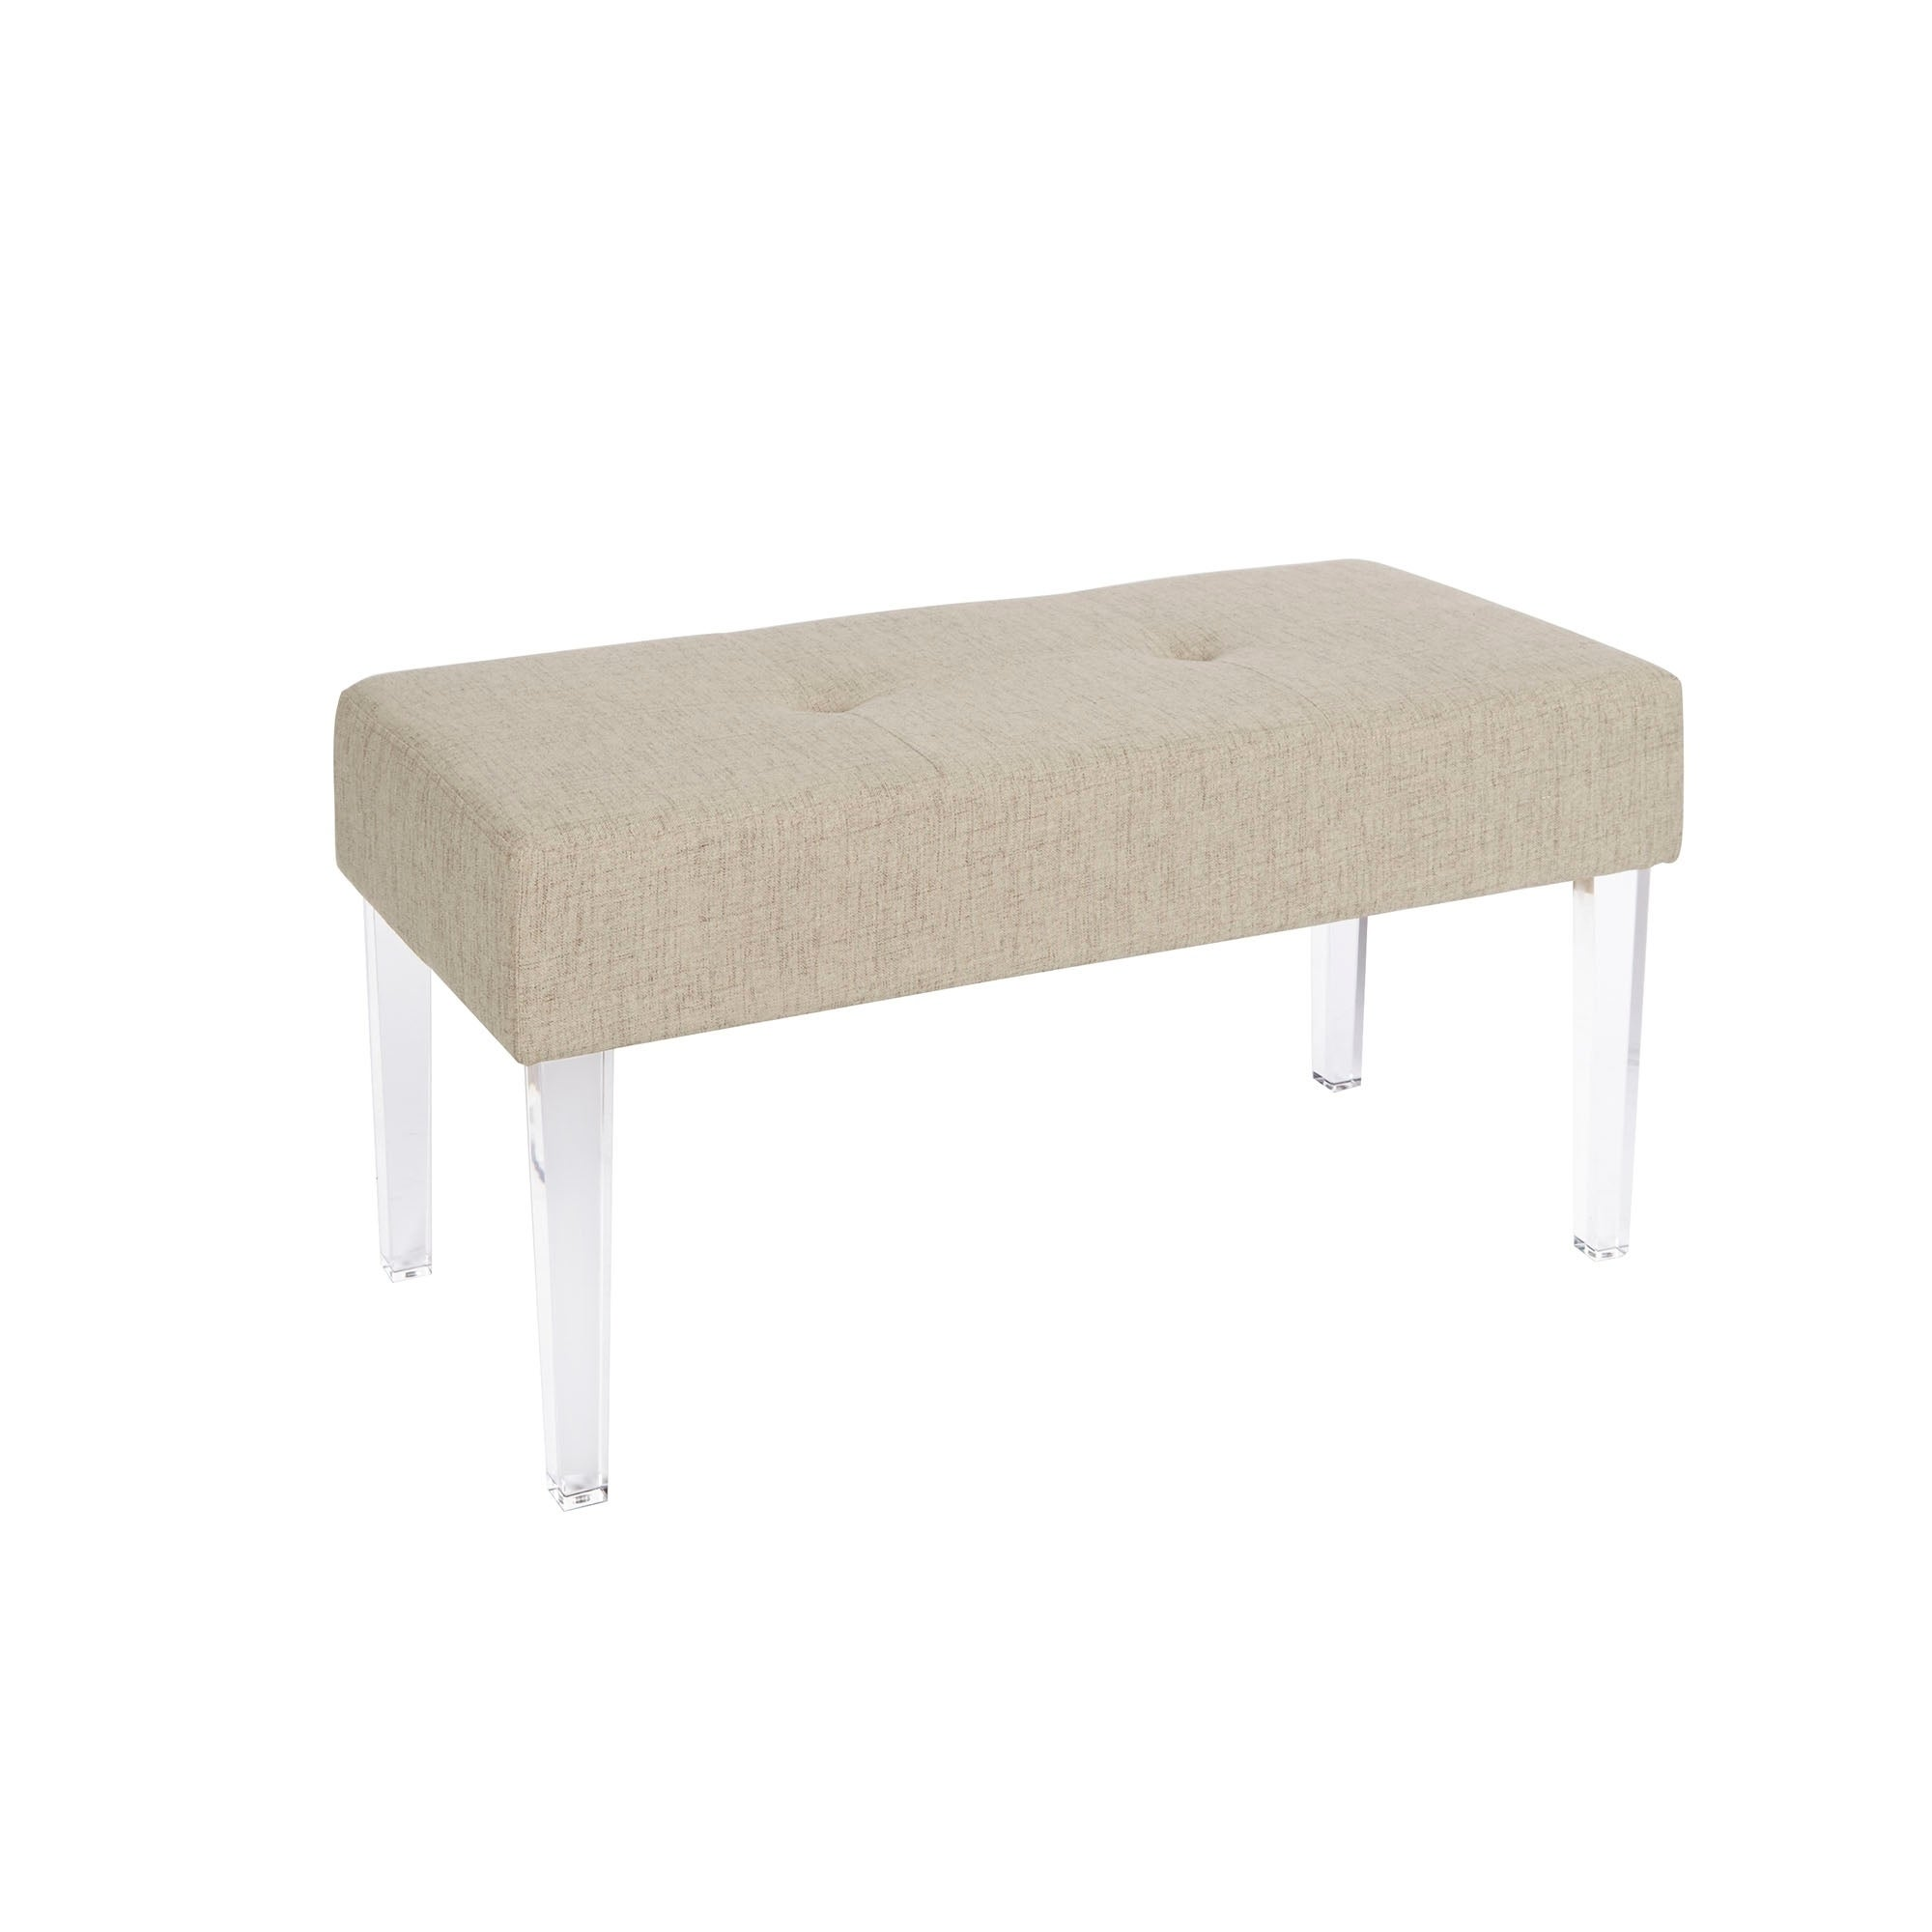 Shop claire acrylic leg rectangular bench on sale free shipping today overstock com 17264670